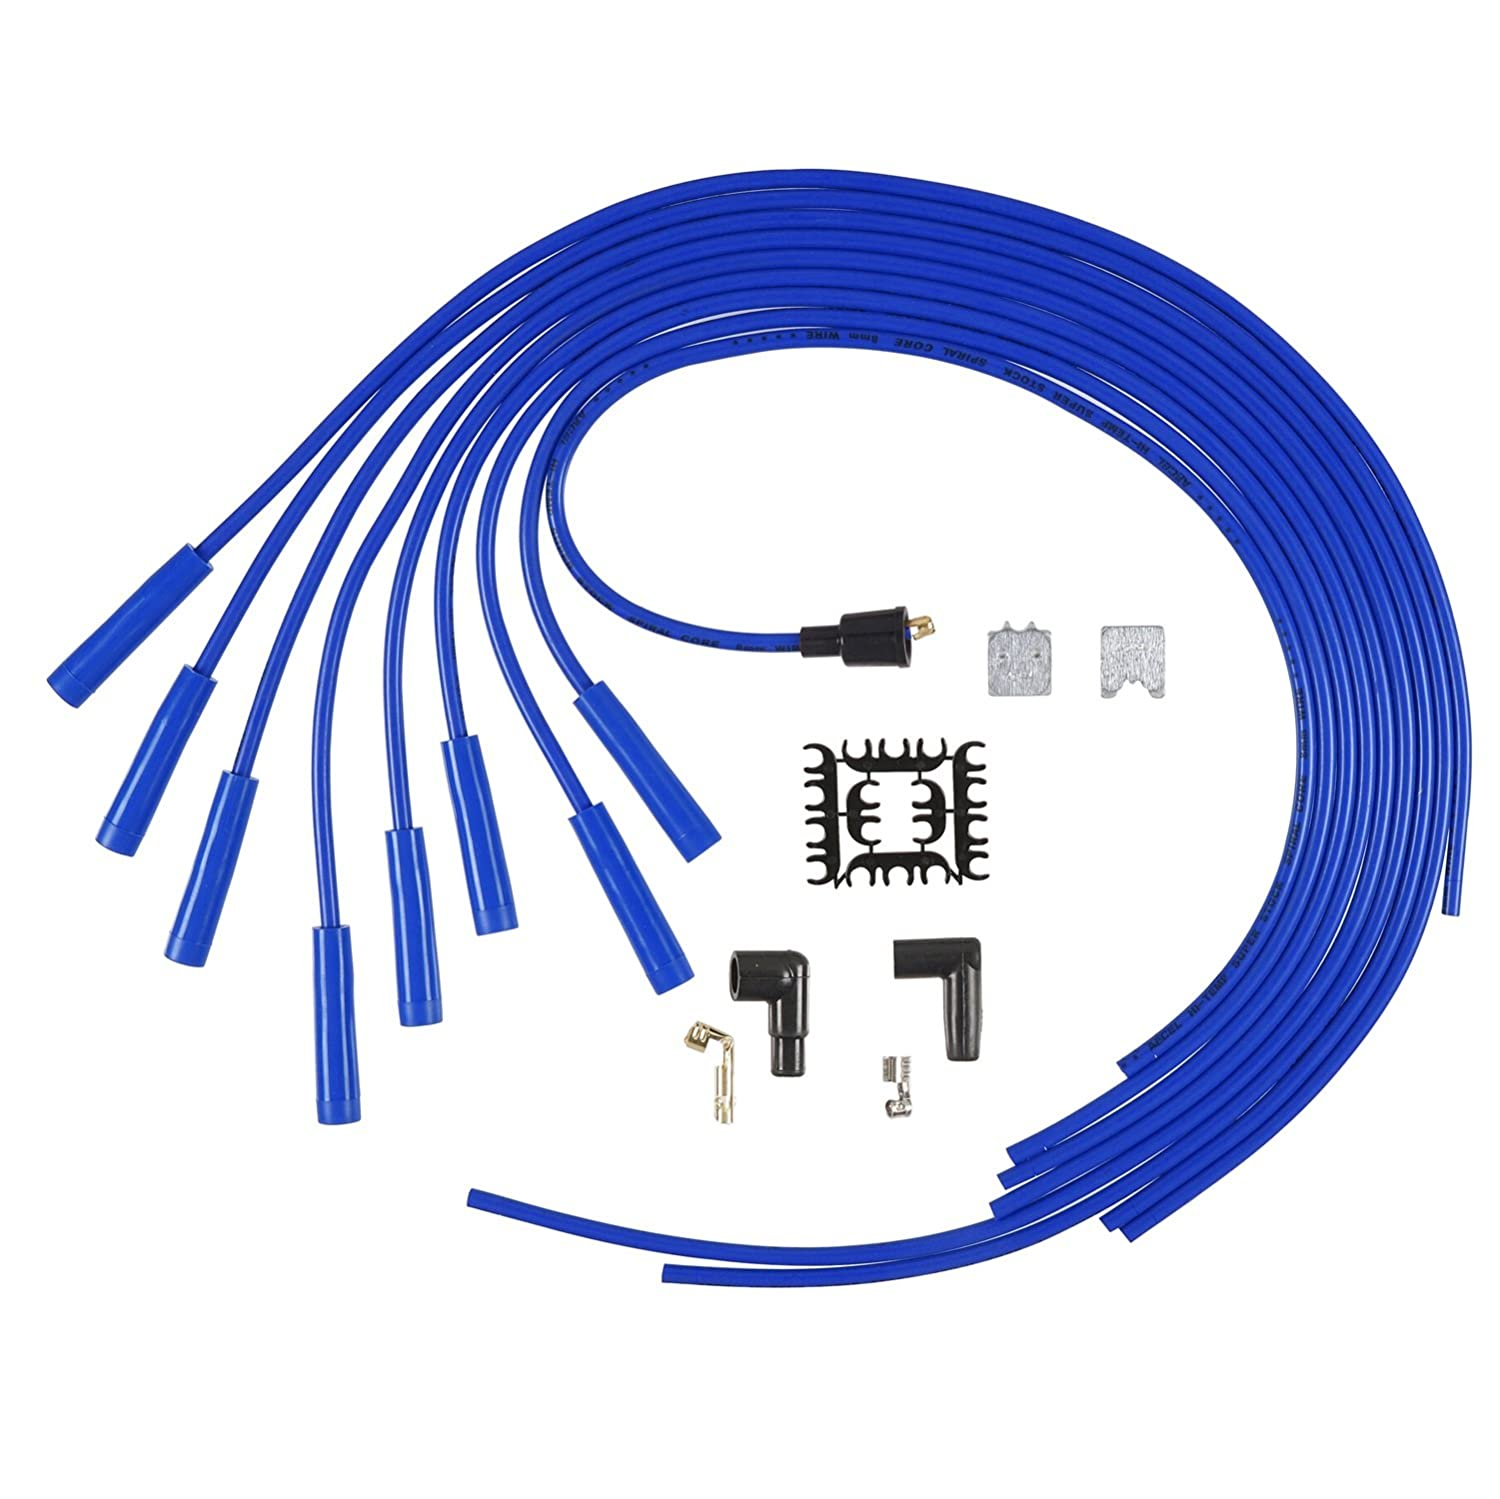 Accel 5040b 8mm Super Stock Spiral Universal Wire Set 1979 Gmc 5000 Electrical Wiring Diagram Blue Automotive